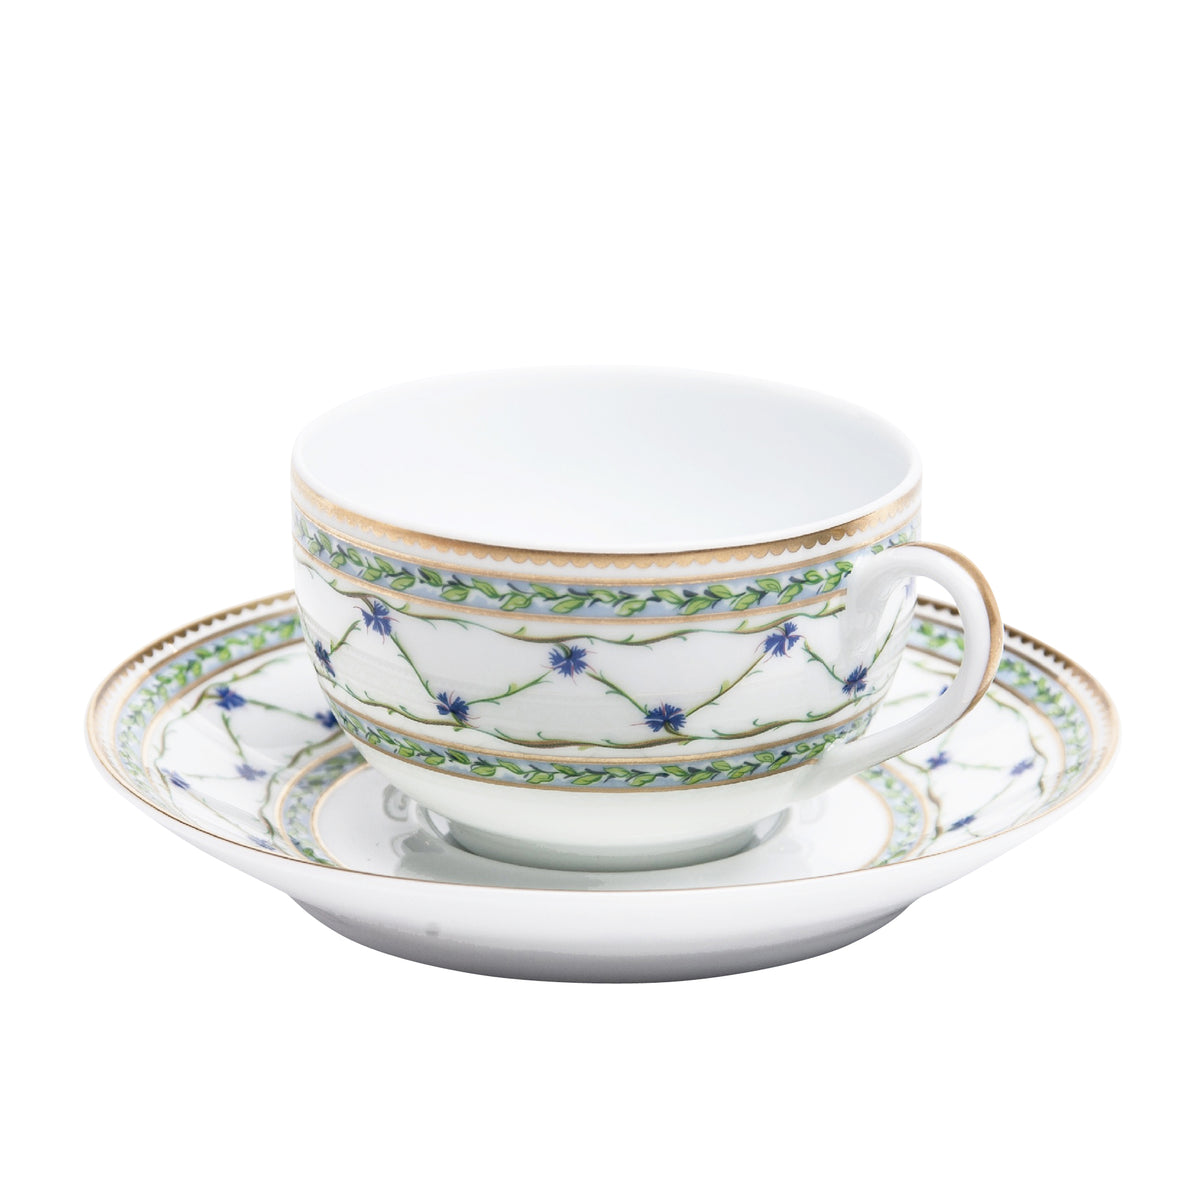 Allee Royale Porcelain Tea Cup and Saucer